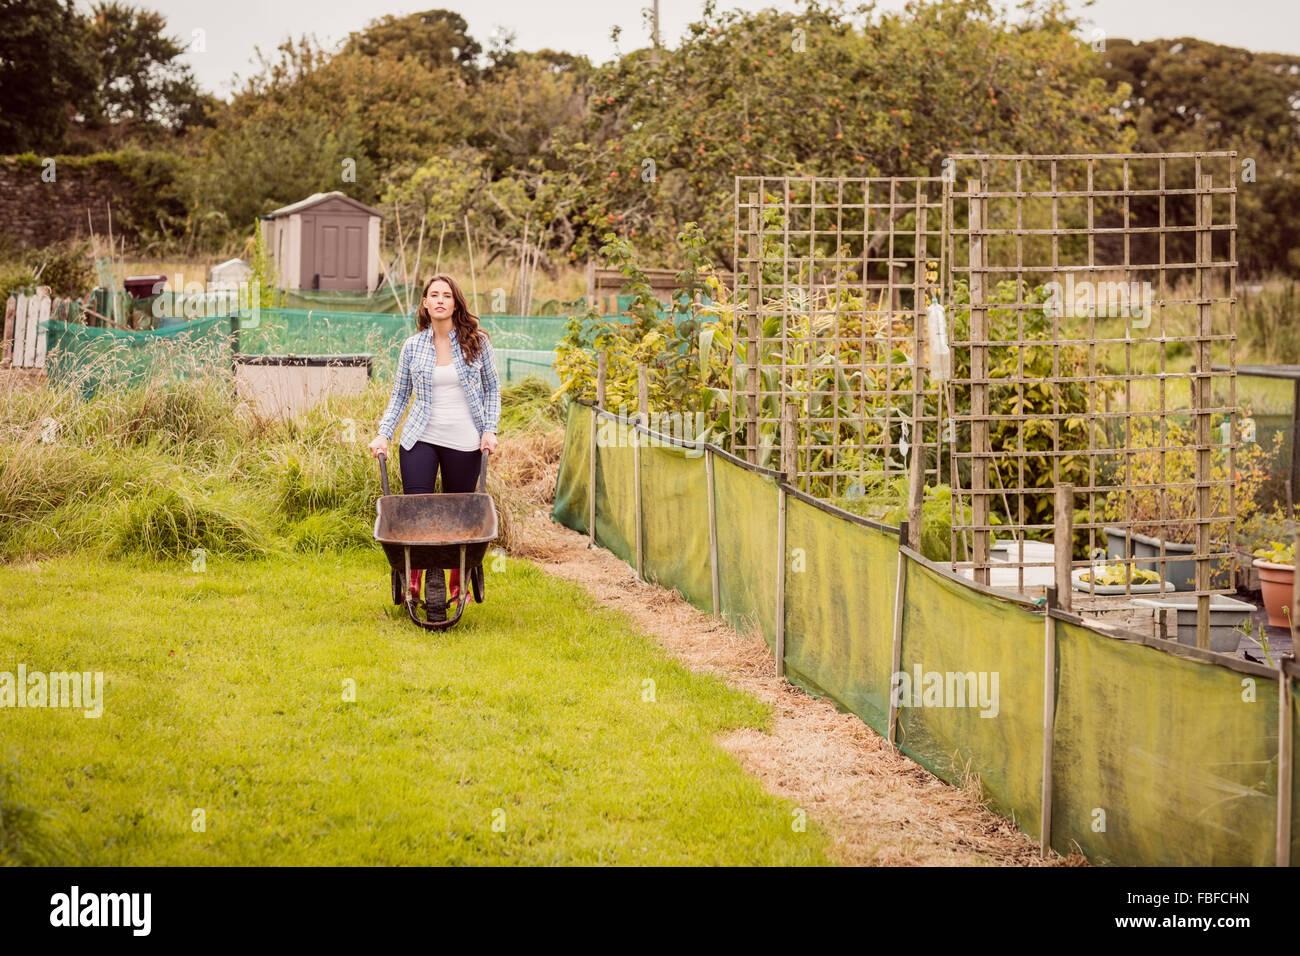 Woman pushing a wheelbarrow - Stock Image